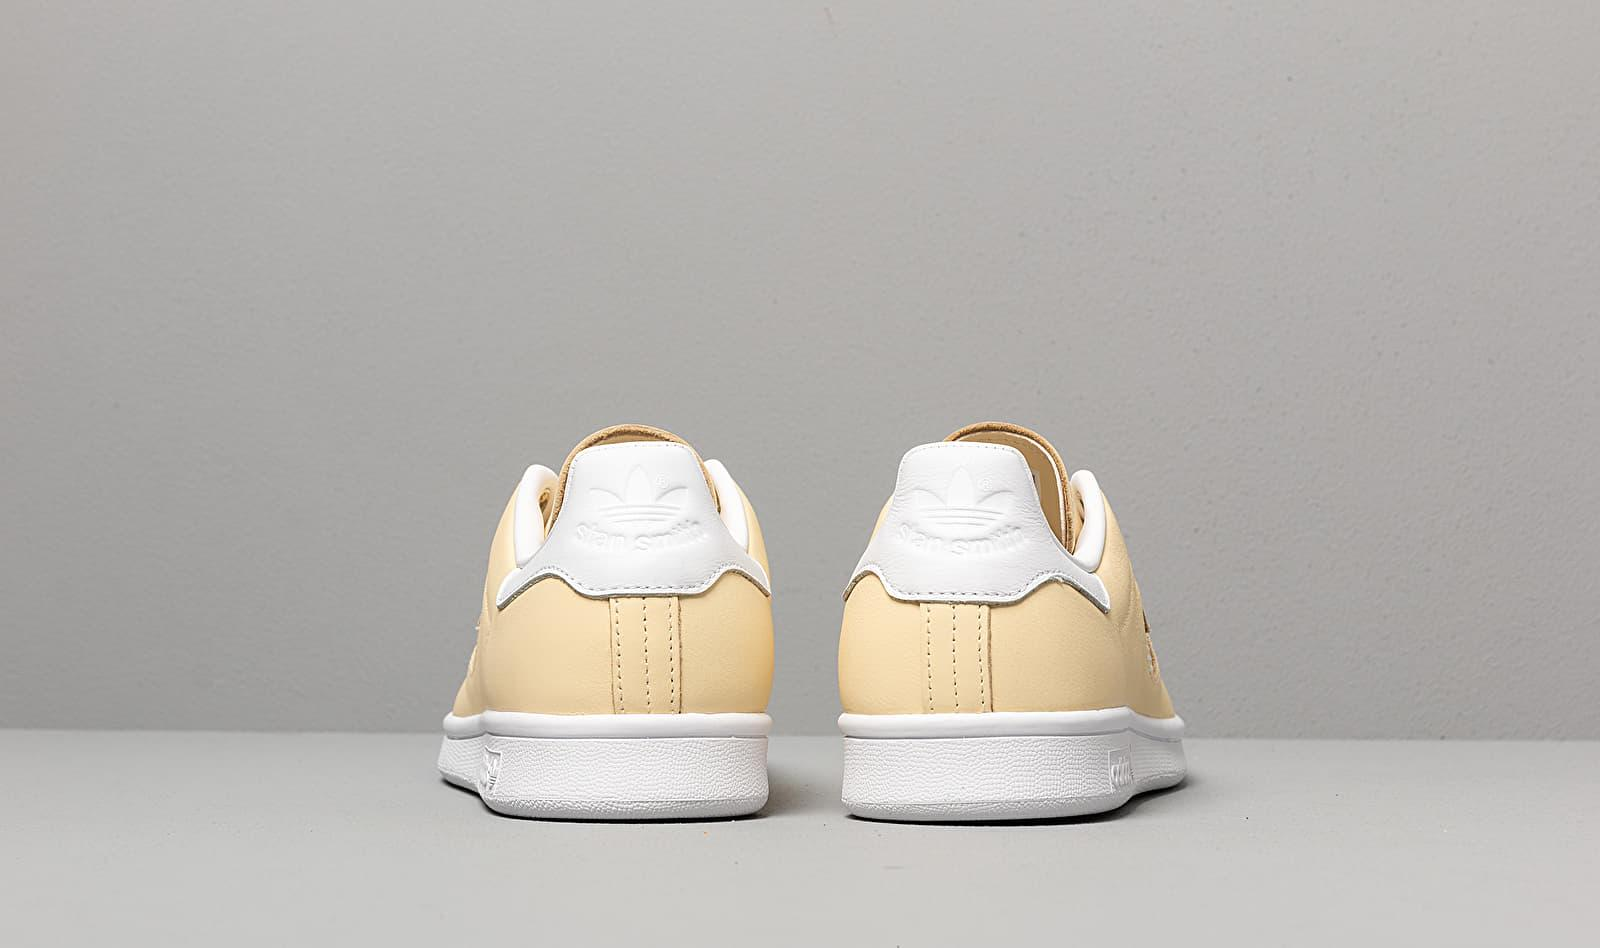 Adidas Stan Smith Easy Yellow/ Ftw White/ Easy Yellow adidas de hombre